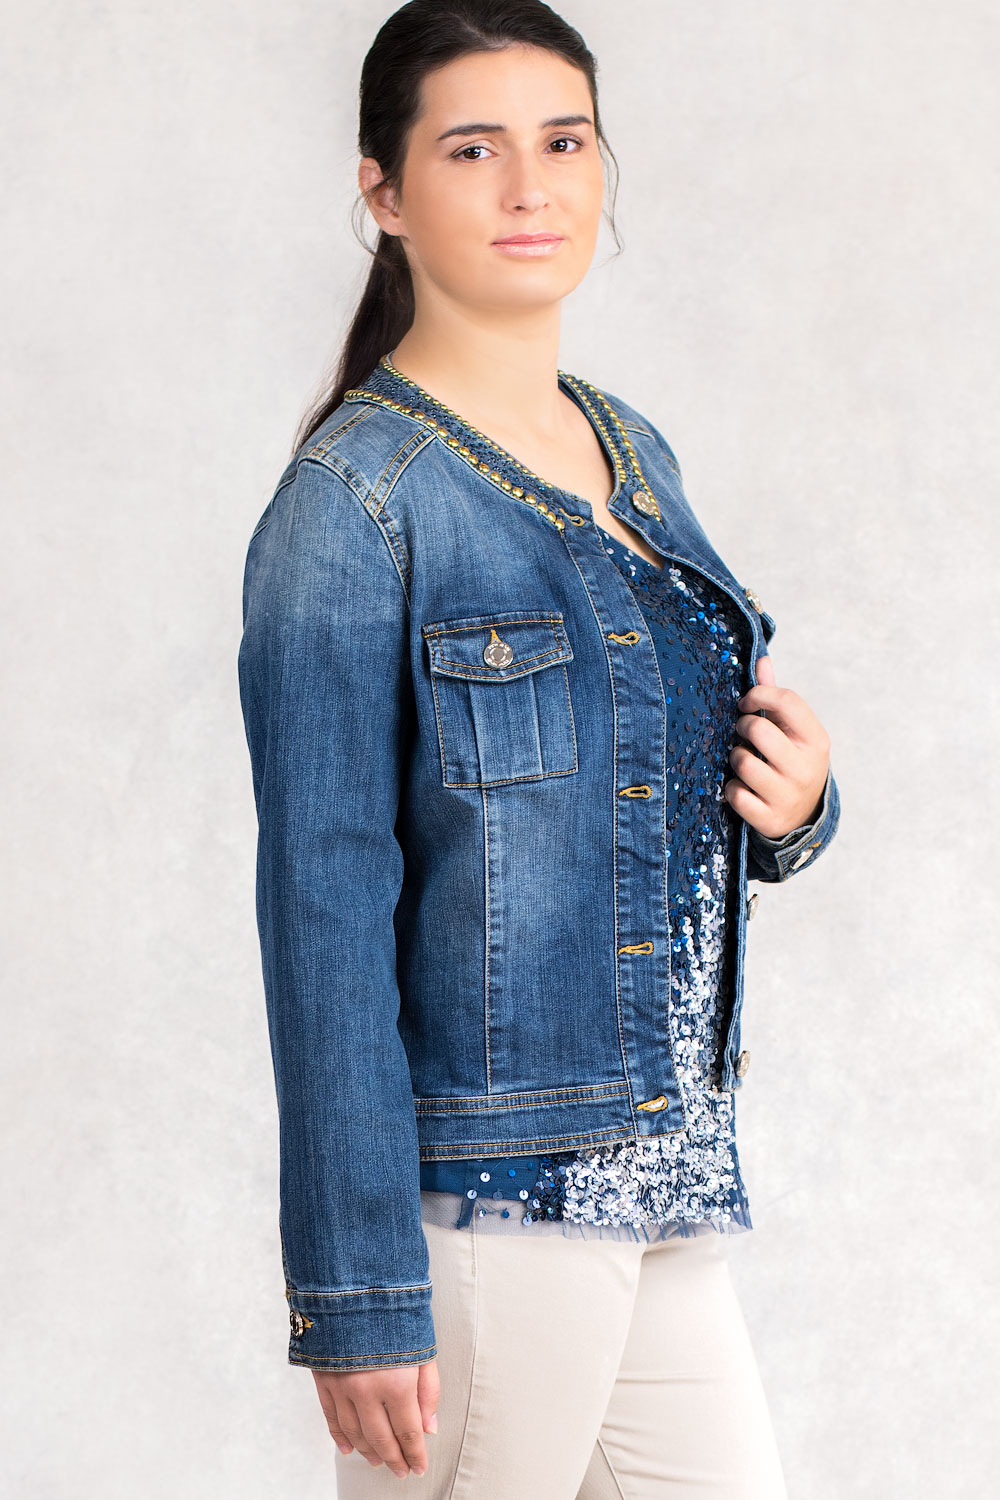 More By Siste S Casual Chic Designer Denim Jacket Claddio